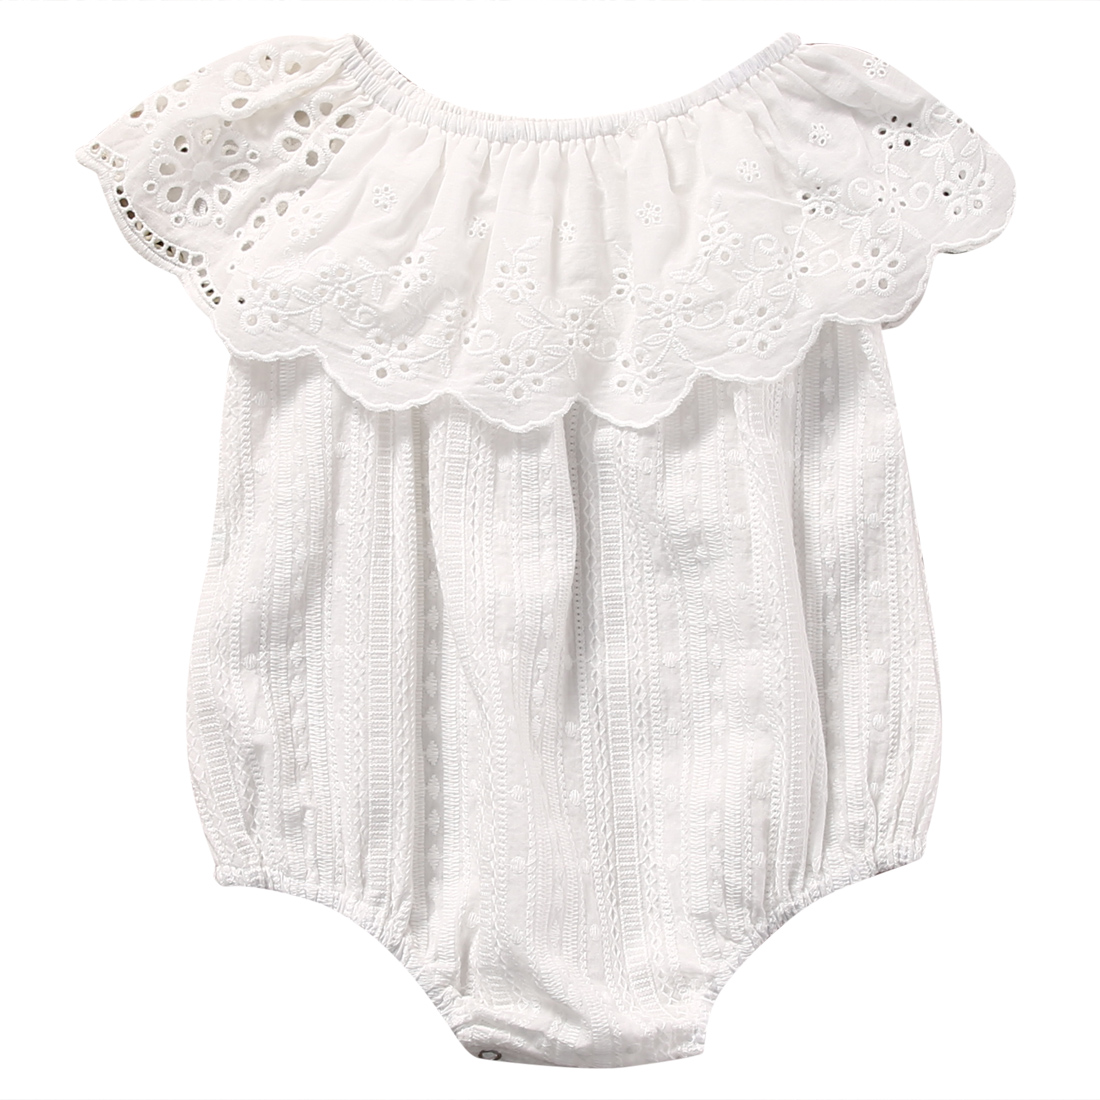 2017 New Cute Newborn Baby Girl Romper Clothes White Lace Playsuit Jumpsuit Outfit Summer Bebes Sunsuit 0-24M 2017 summer newborn baby girl white lace romper jumpsuit floral infant clothes outfit sunsuit